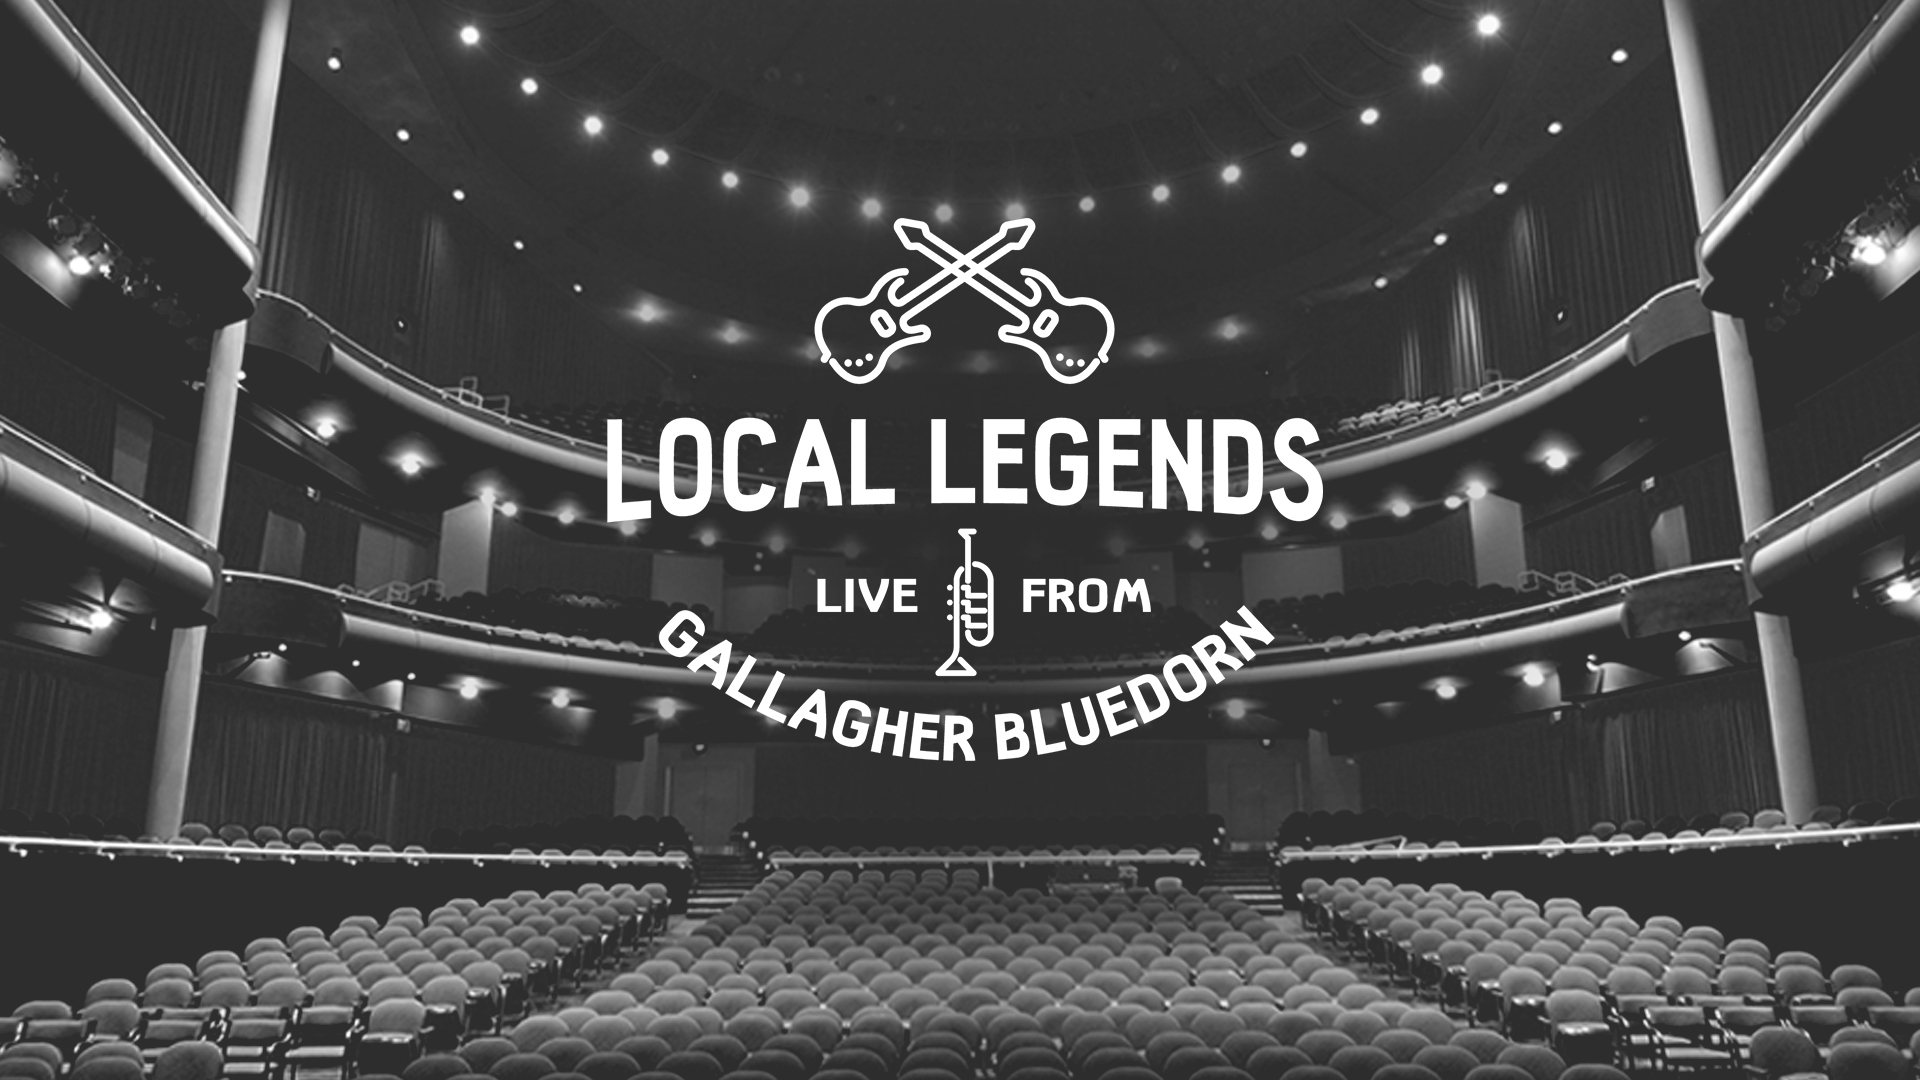 Empty Great Hall stage in black and white. White text over top that reads Local Legends Live From Gallagher Bluedorn